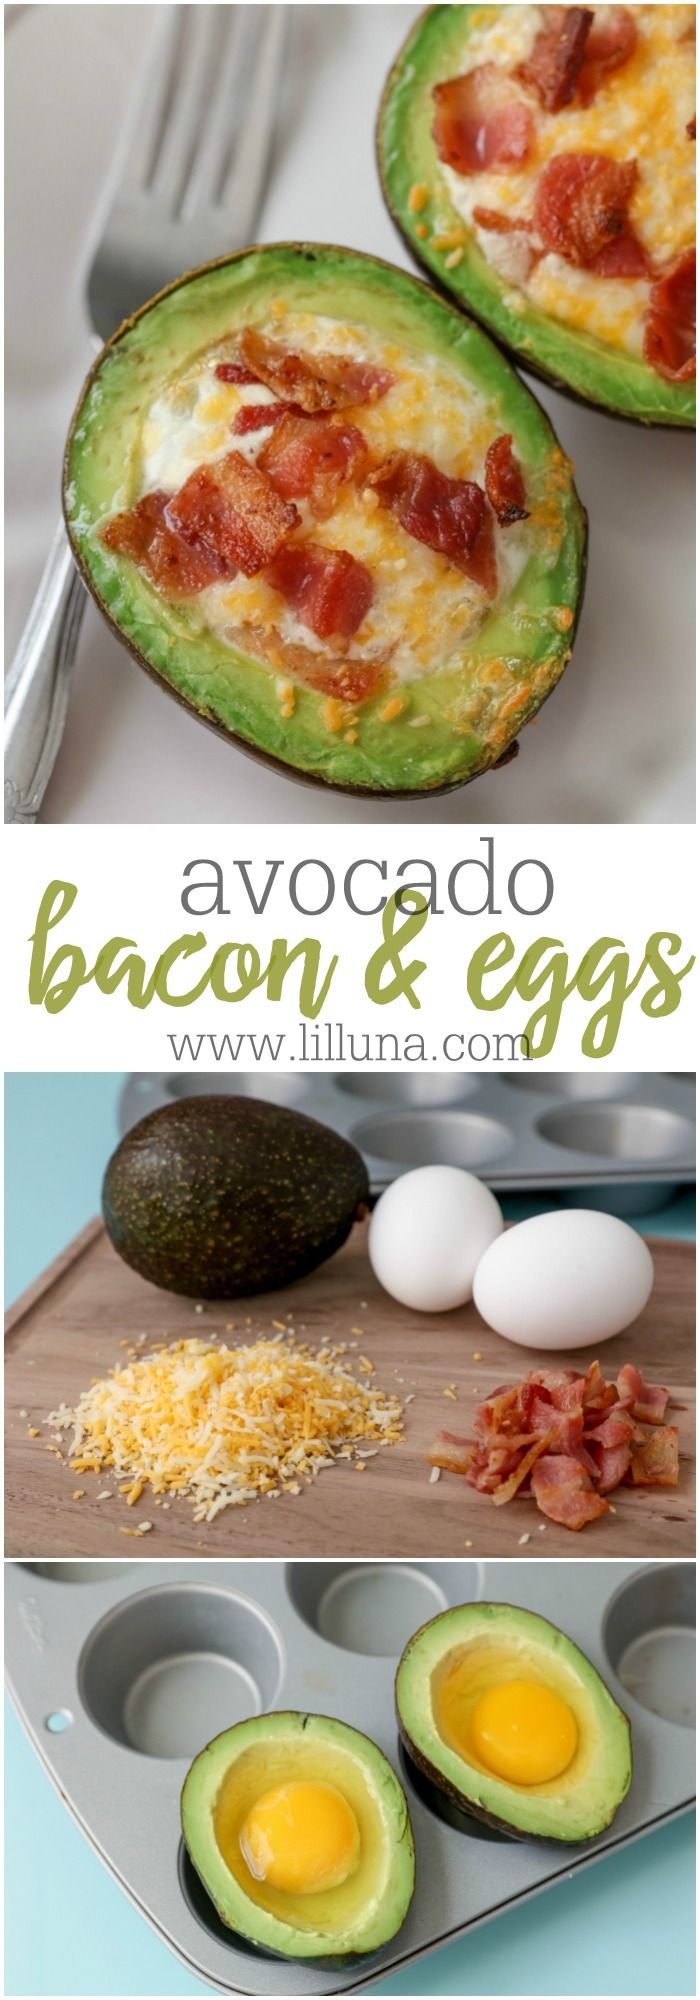 Breakfast, Start your day off right here! Avocado Bacon and eggs - one of our favorite breakfast recipes. They're topped with cheese and so delicious!